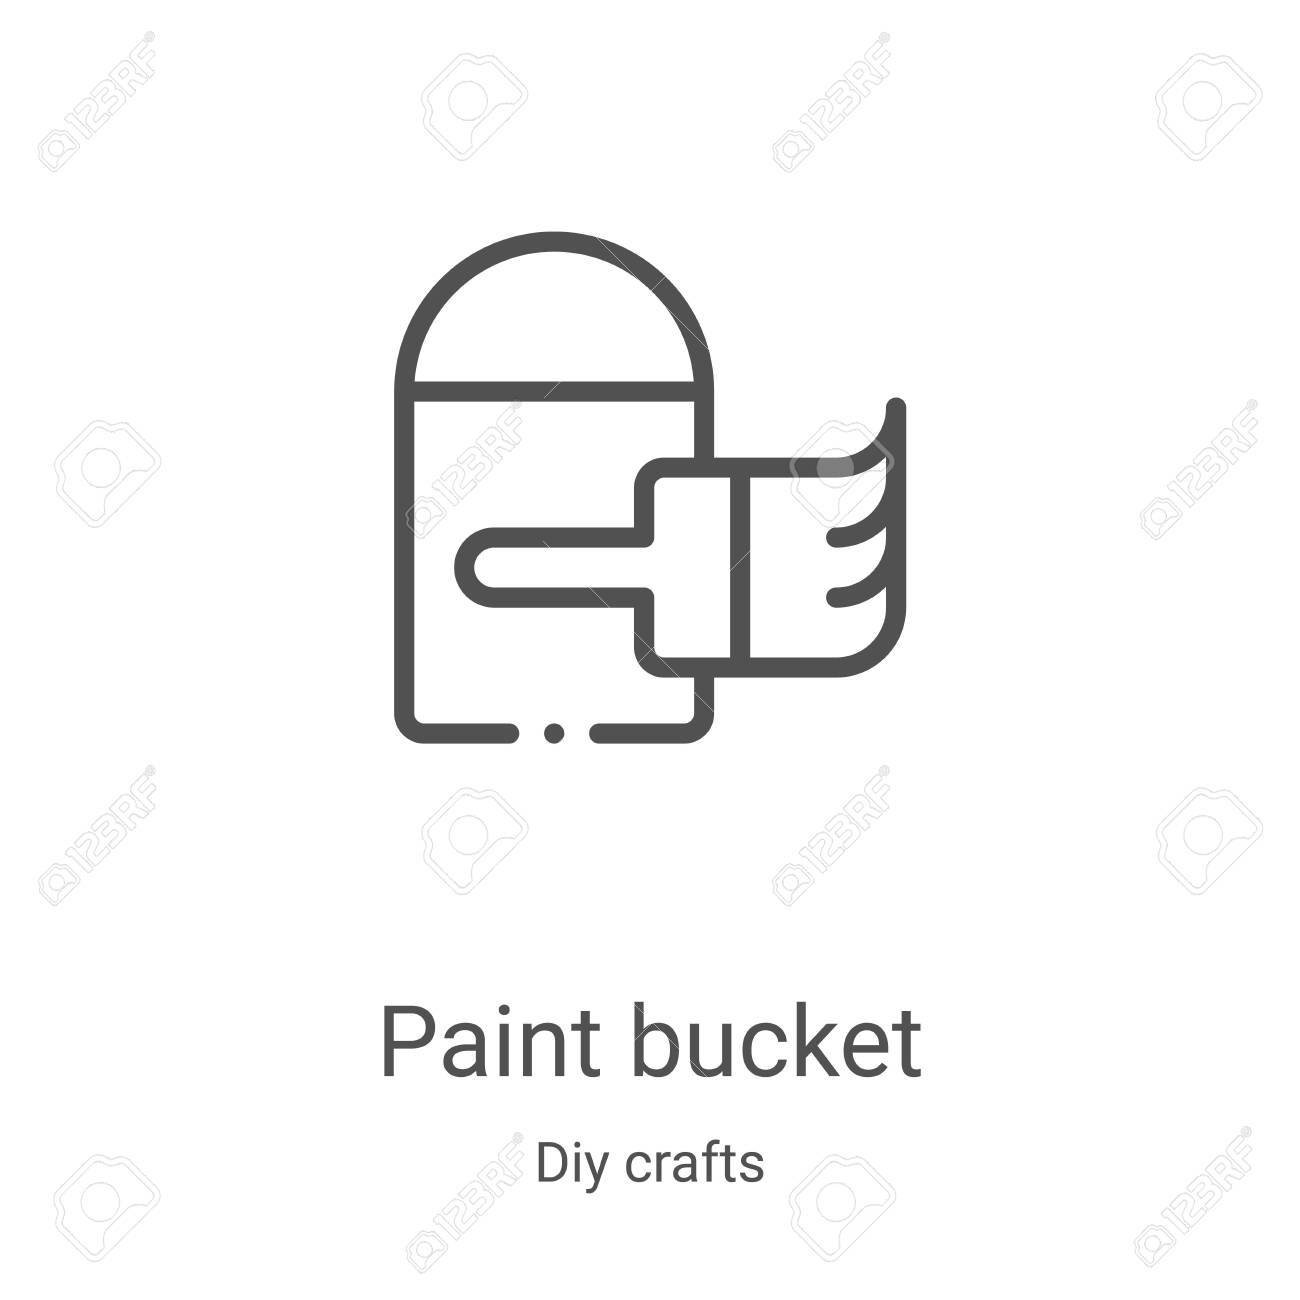 Paint Bucket Icon Vector From Diy Crafts Collection Thin Line Royalty Free Cliparts Vectors And Stock Illustration Image 135560678